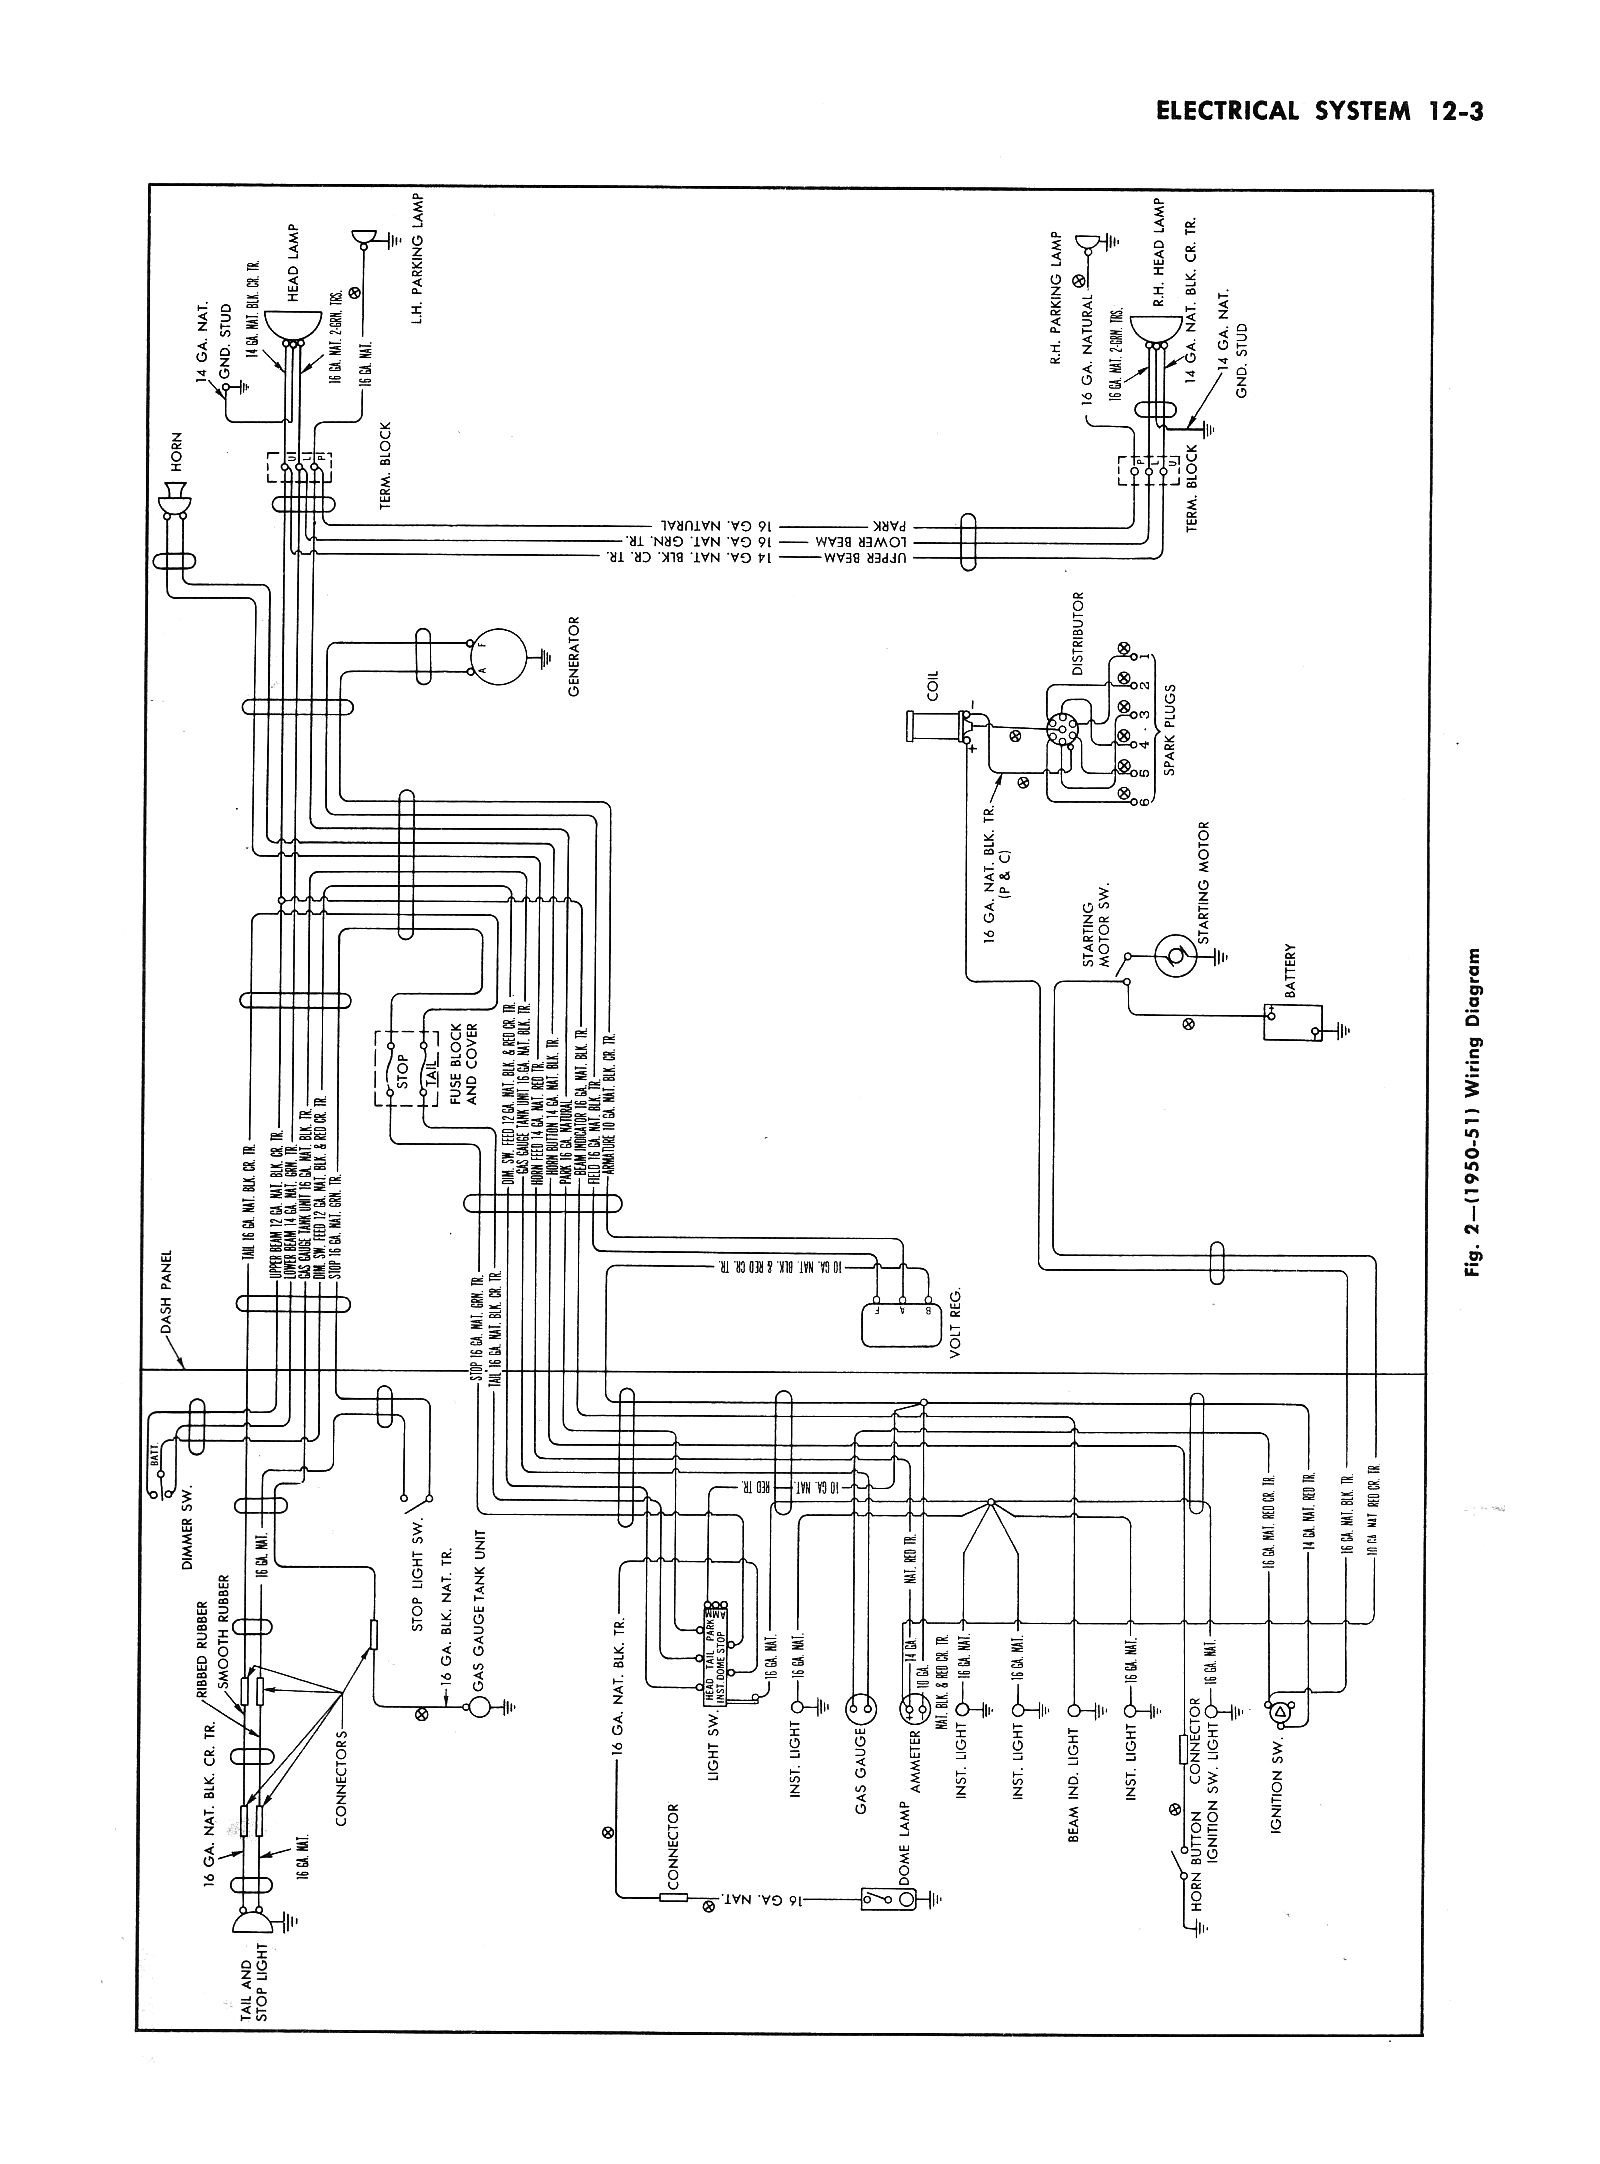 50ctsm1203 1968 cadillac deville headlight wiring diagram schematic diagram